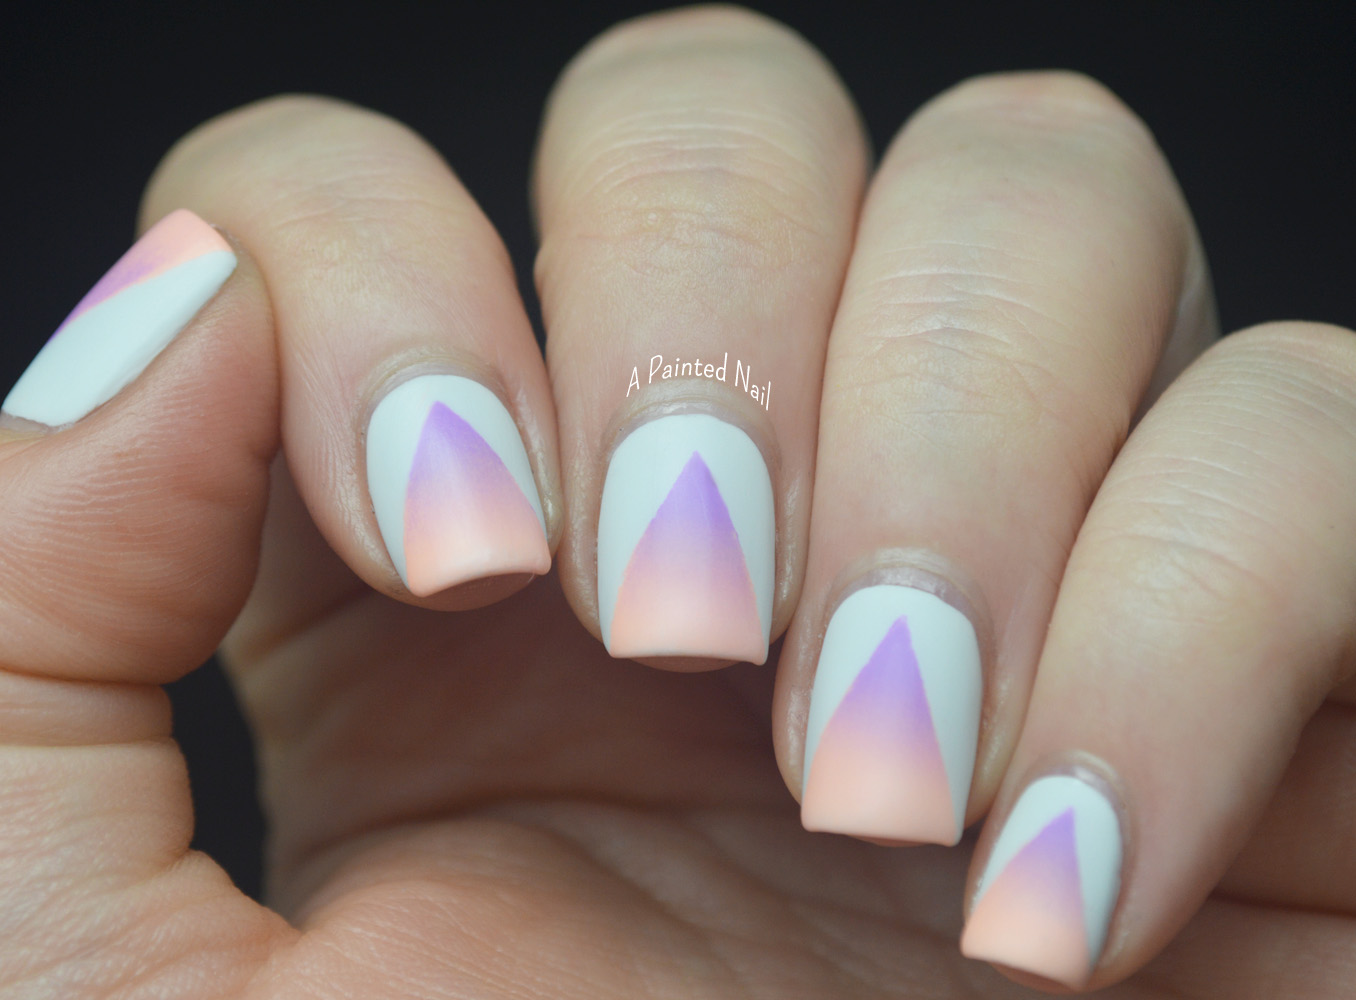 Painted Nail: Summer Nail Art Series: Matte Neon Gradient Cut Outs